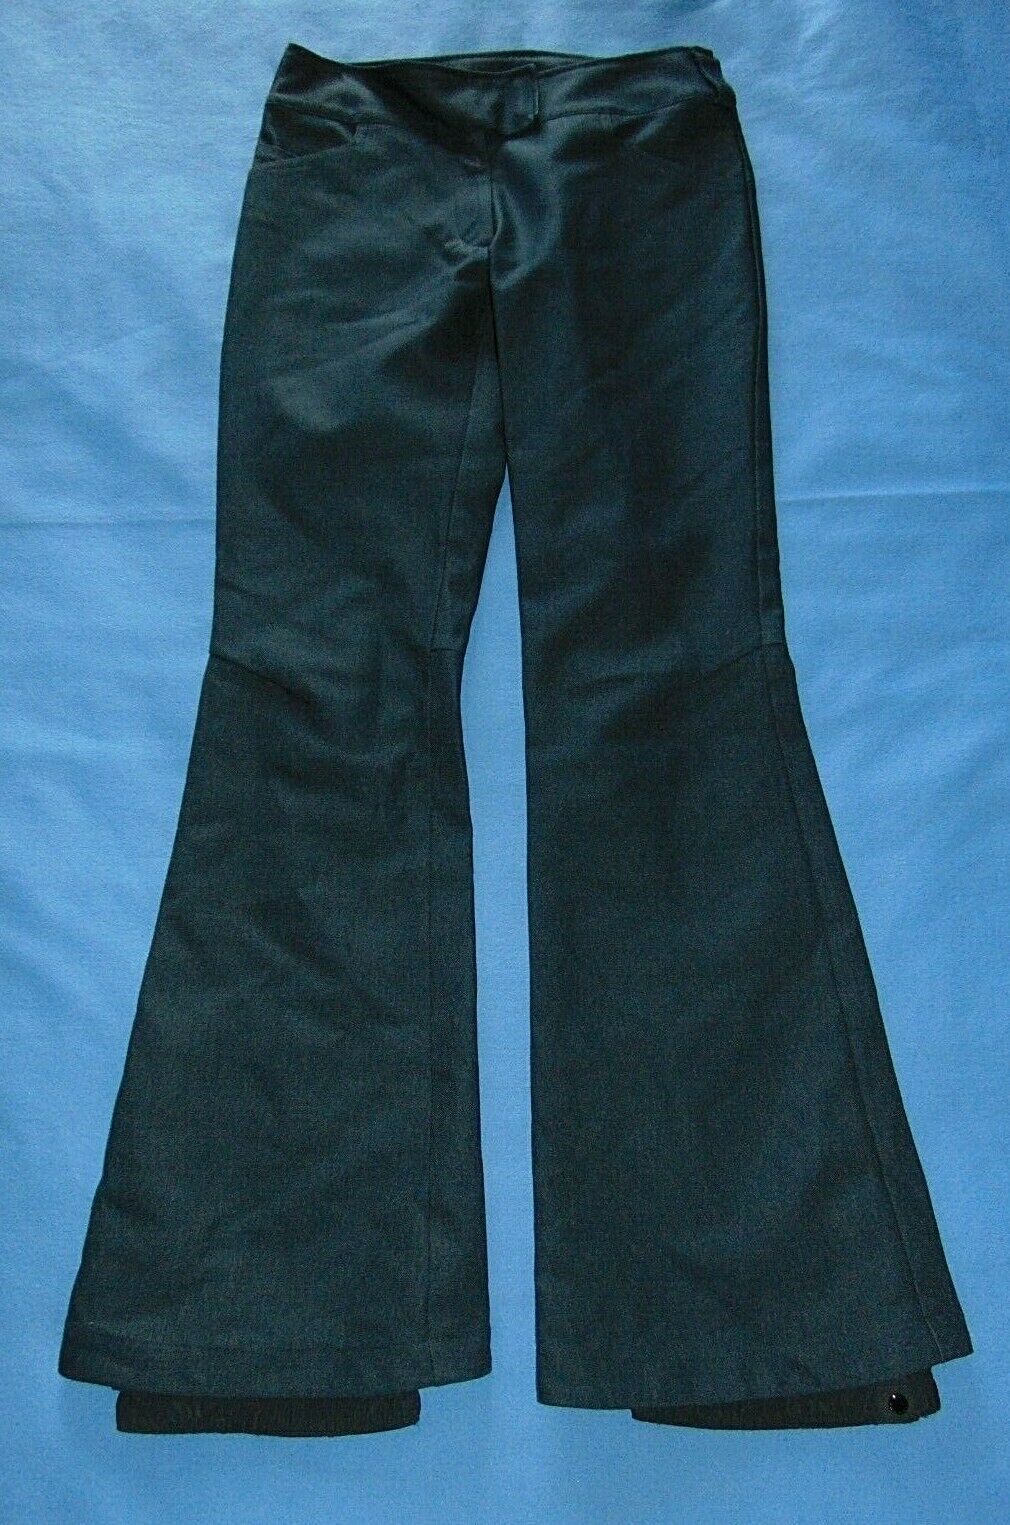 RARE  NWT  damen   RLX   RALPH LAUREN  TECH  SKI PANTS  JEAN STYLE MEDIUM NEW